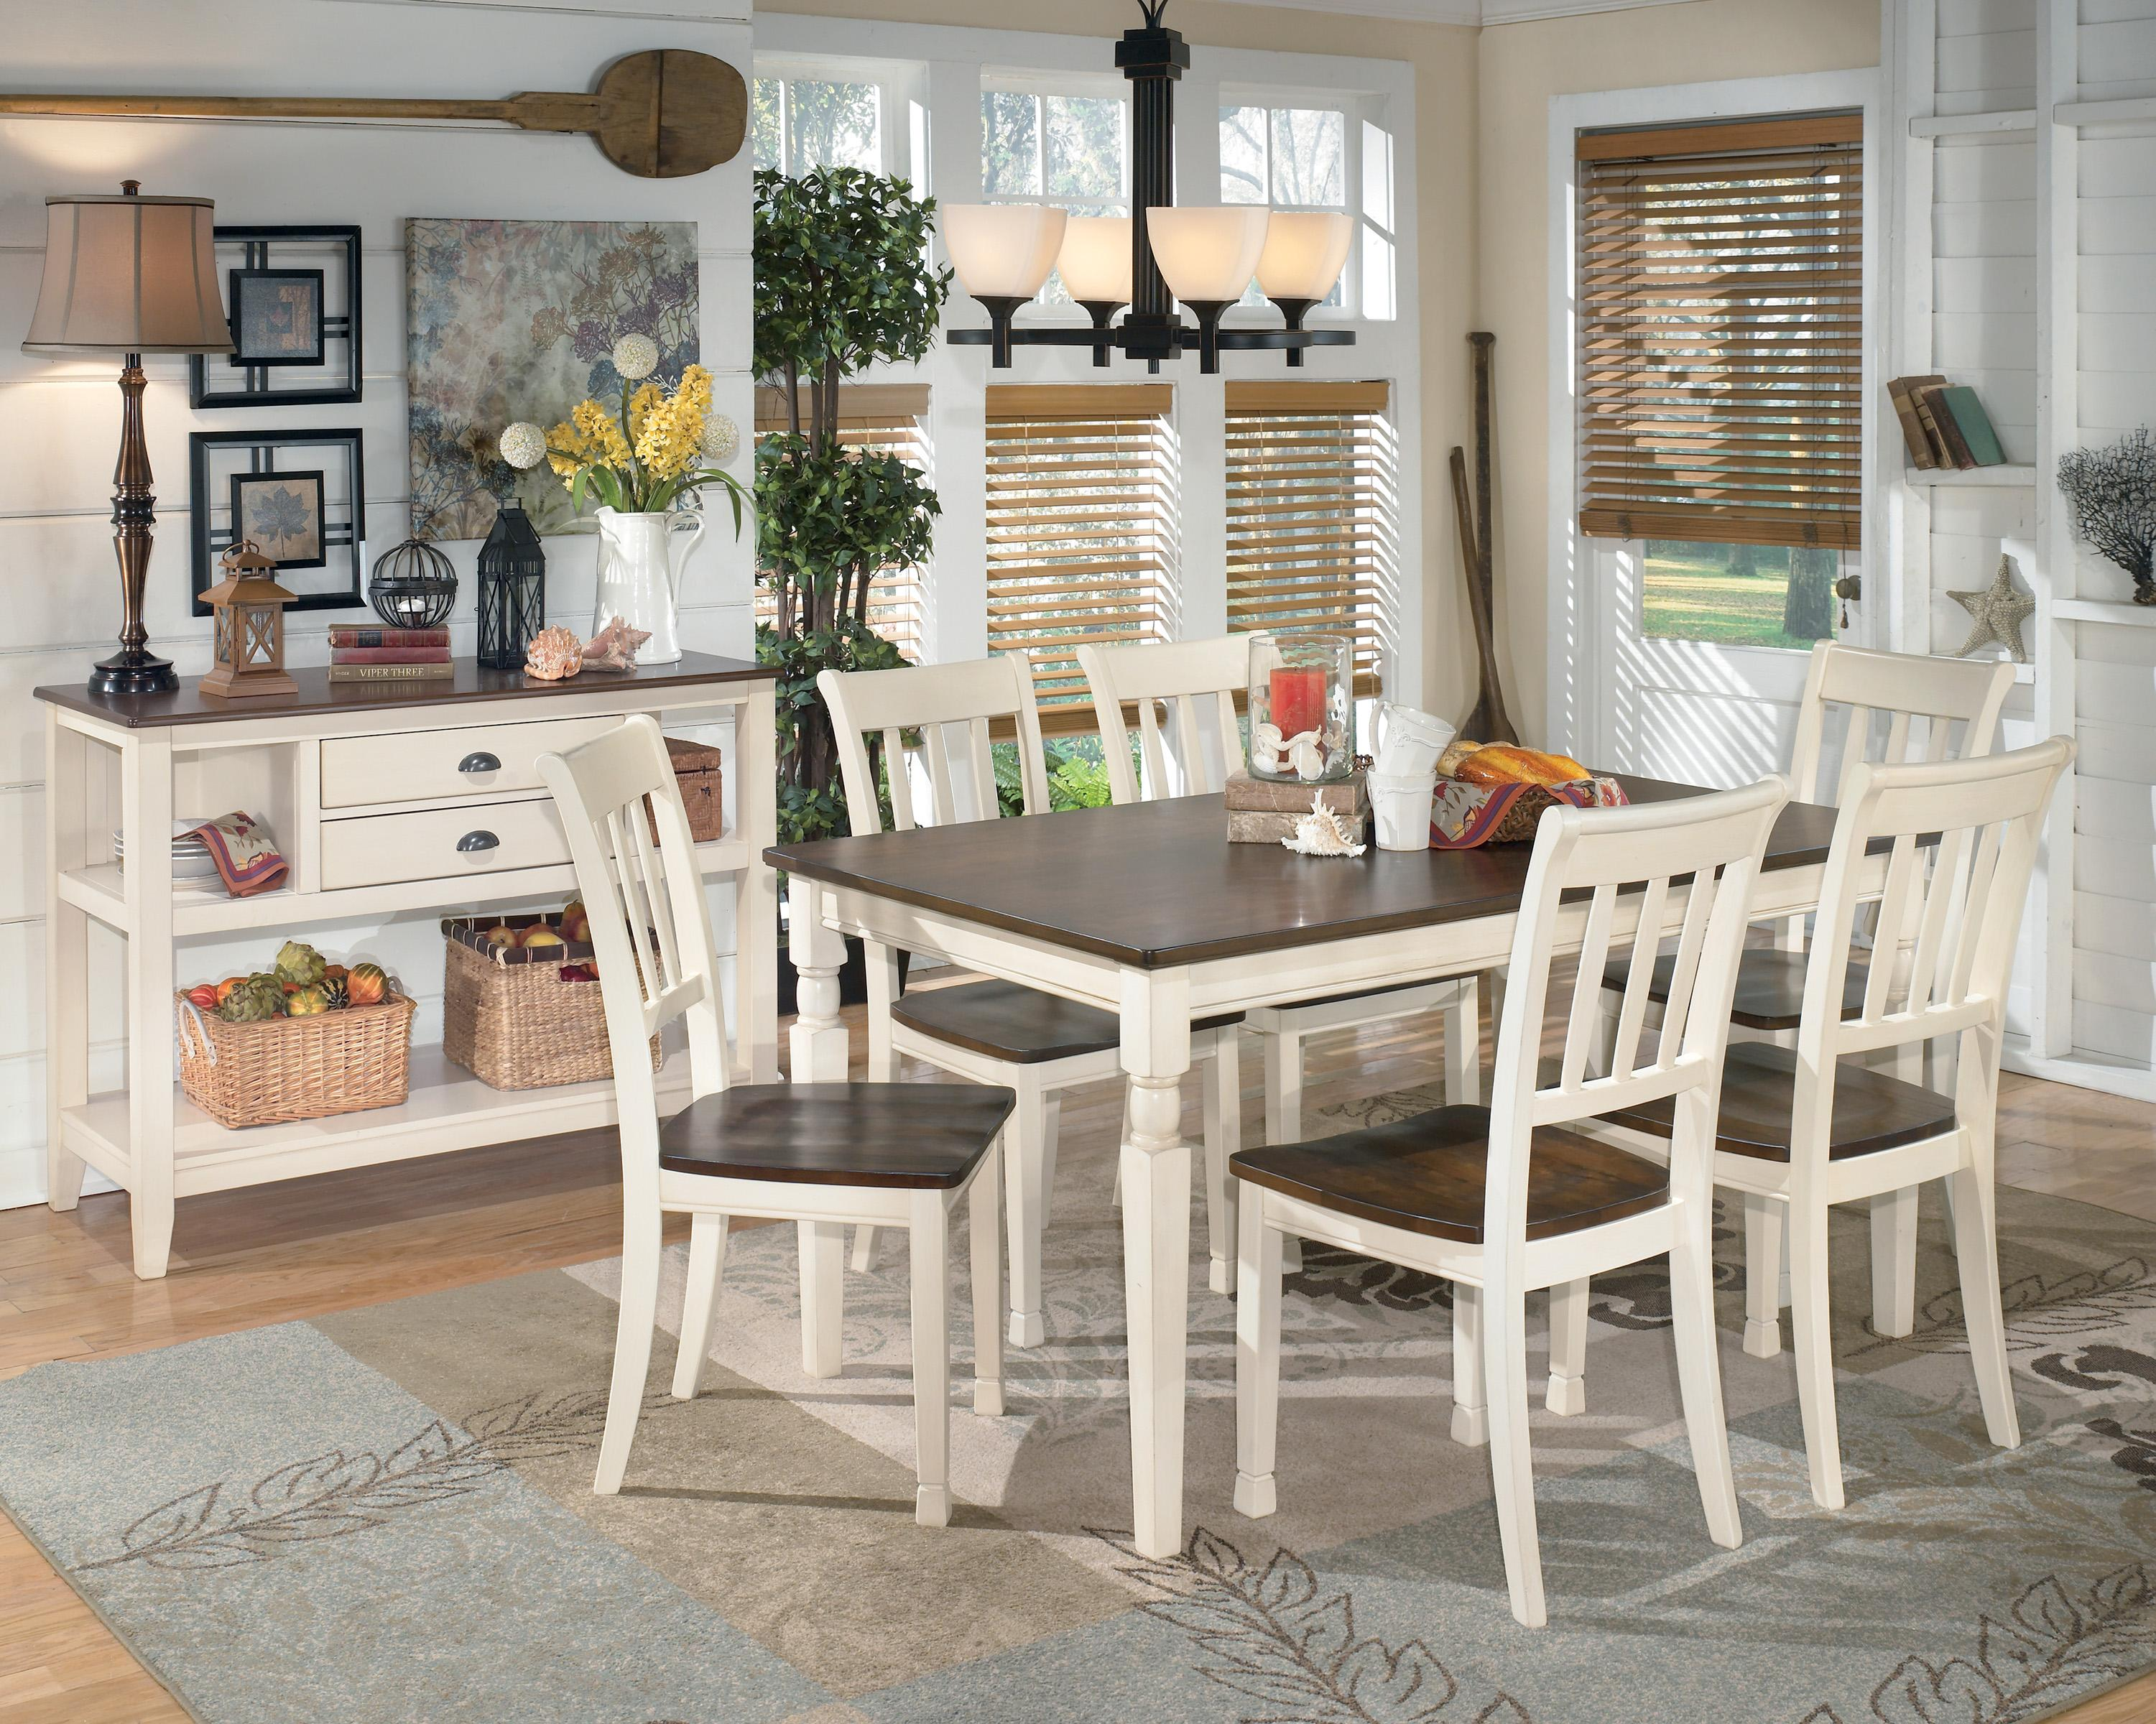 Whitesburg Formal Dining Room Group by Signature Design by Ashley at Sparks HomeStore